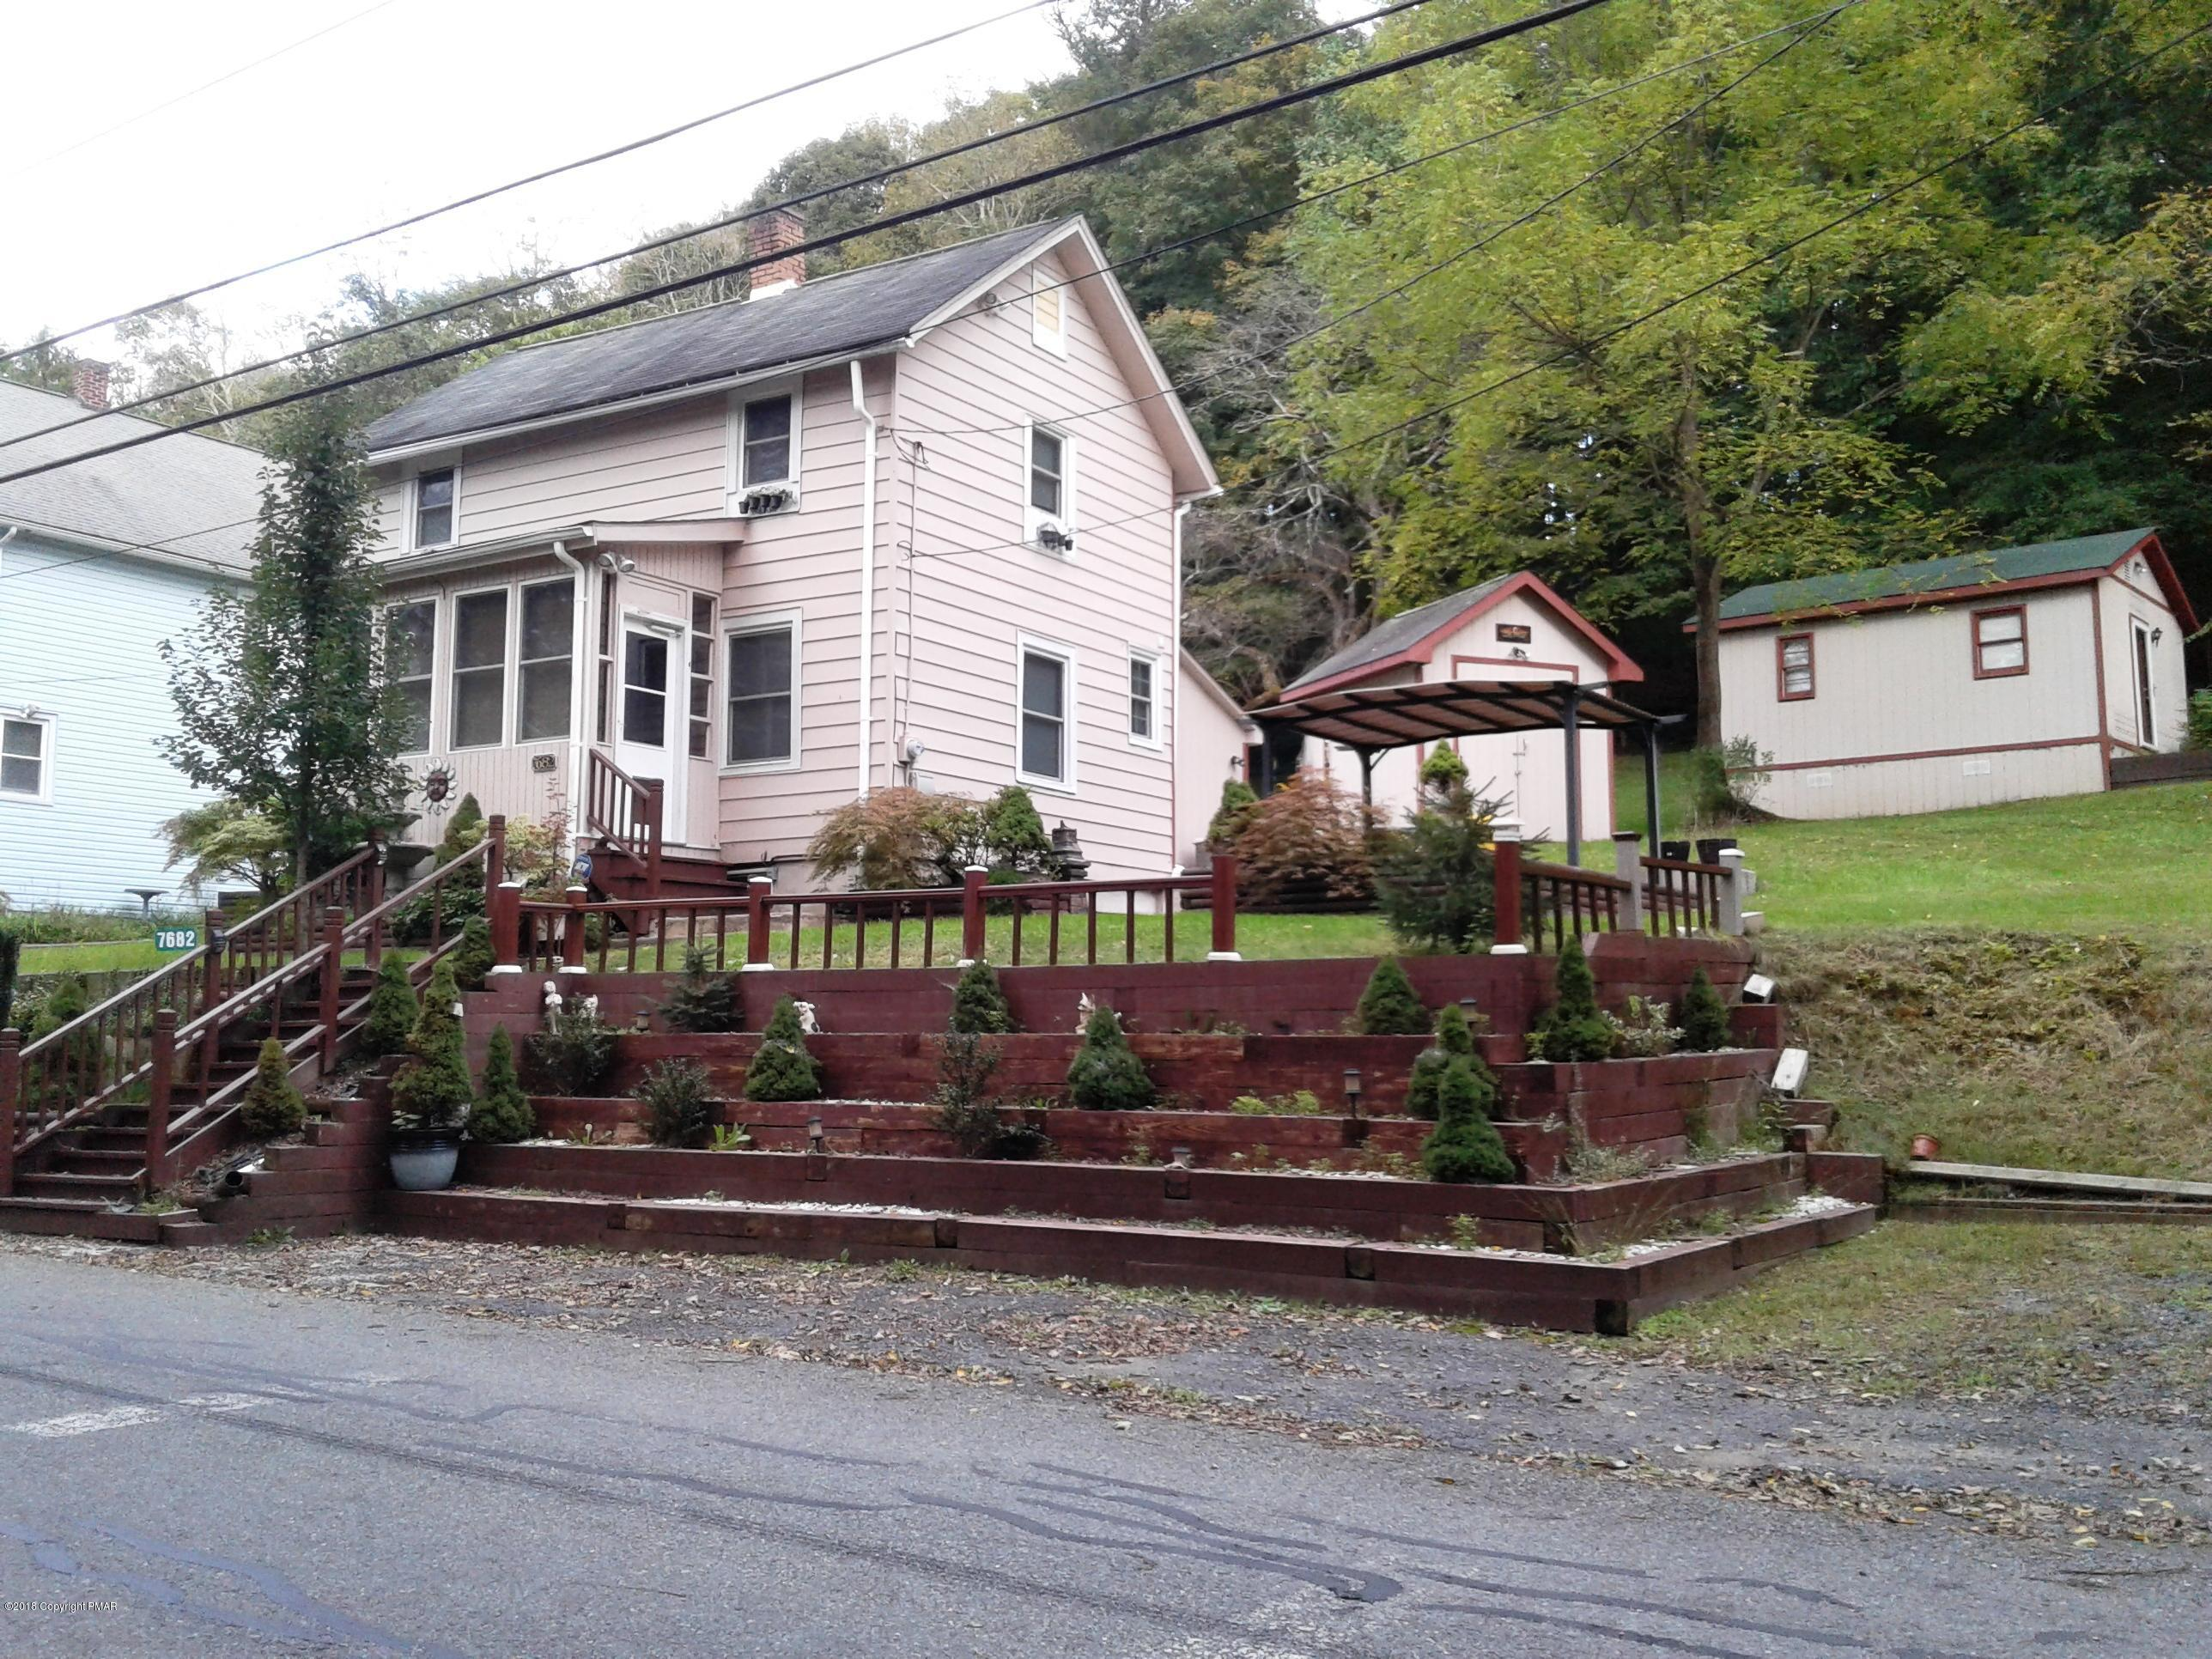 7682 Cherry Valley Rd, Stroudsburg, PA 18360